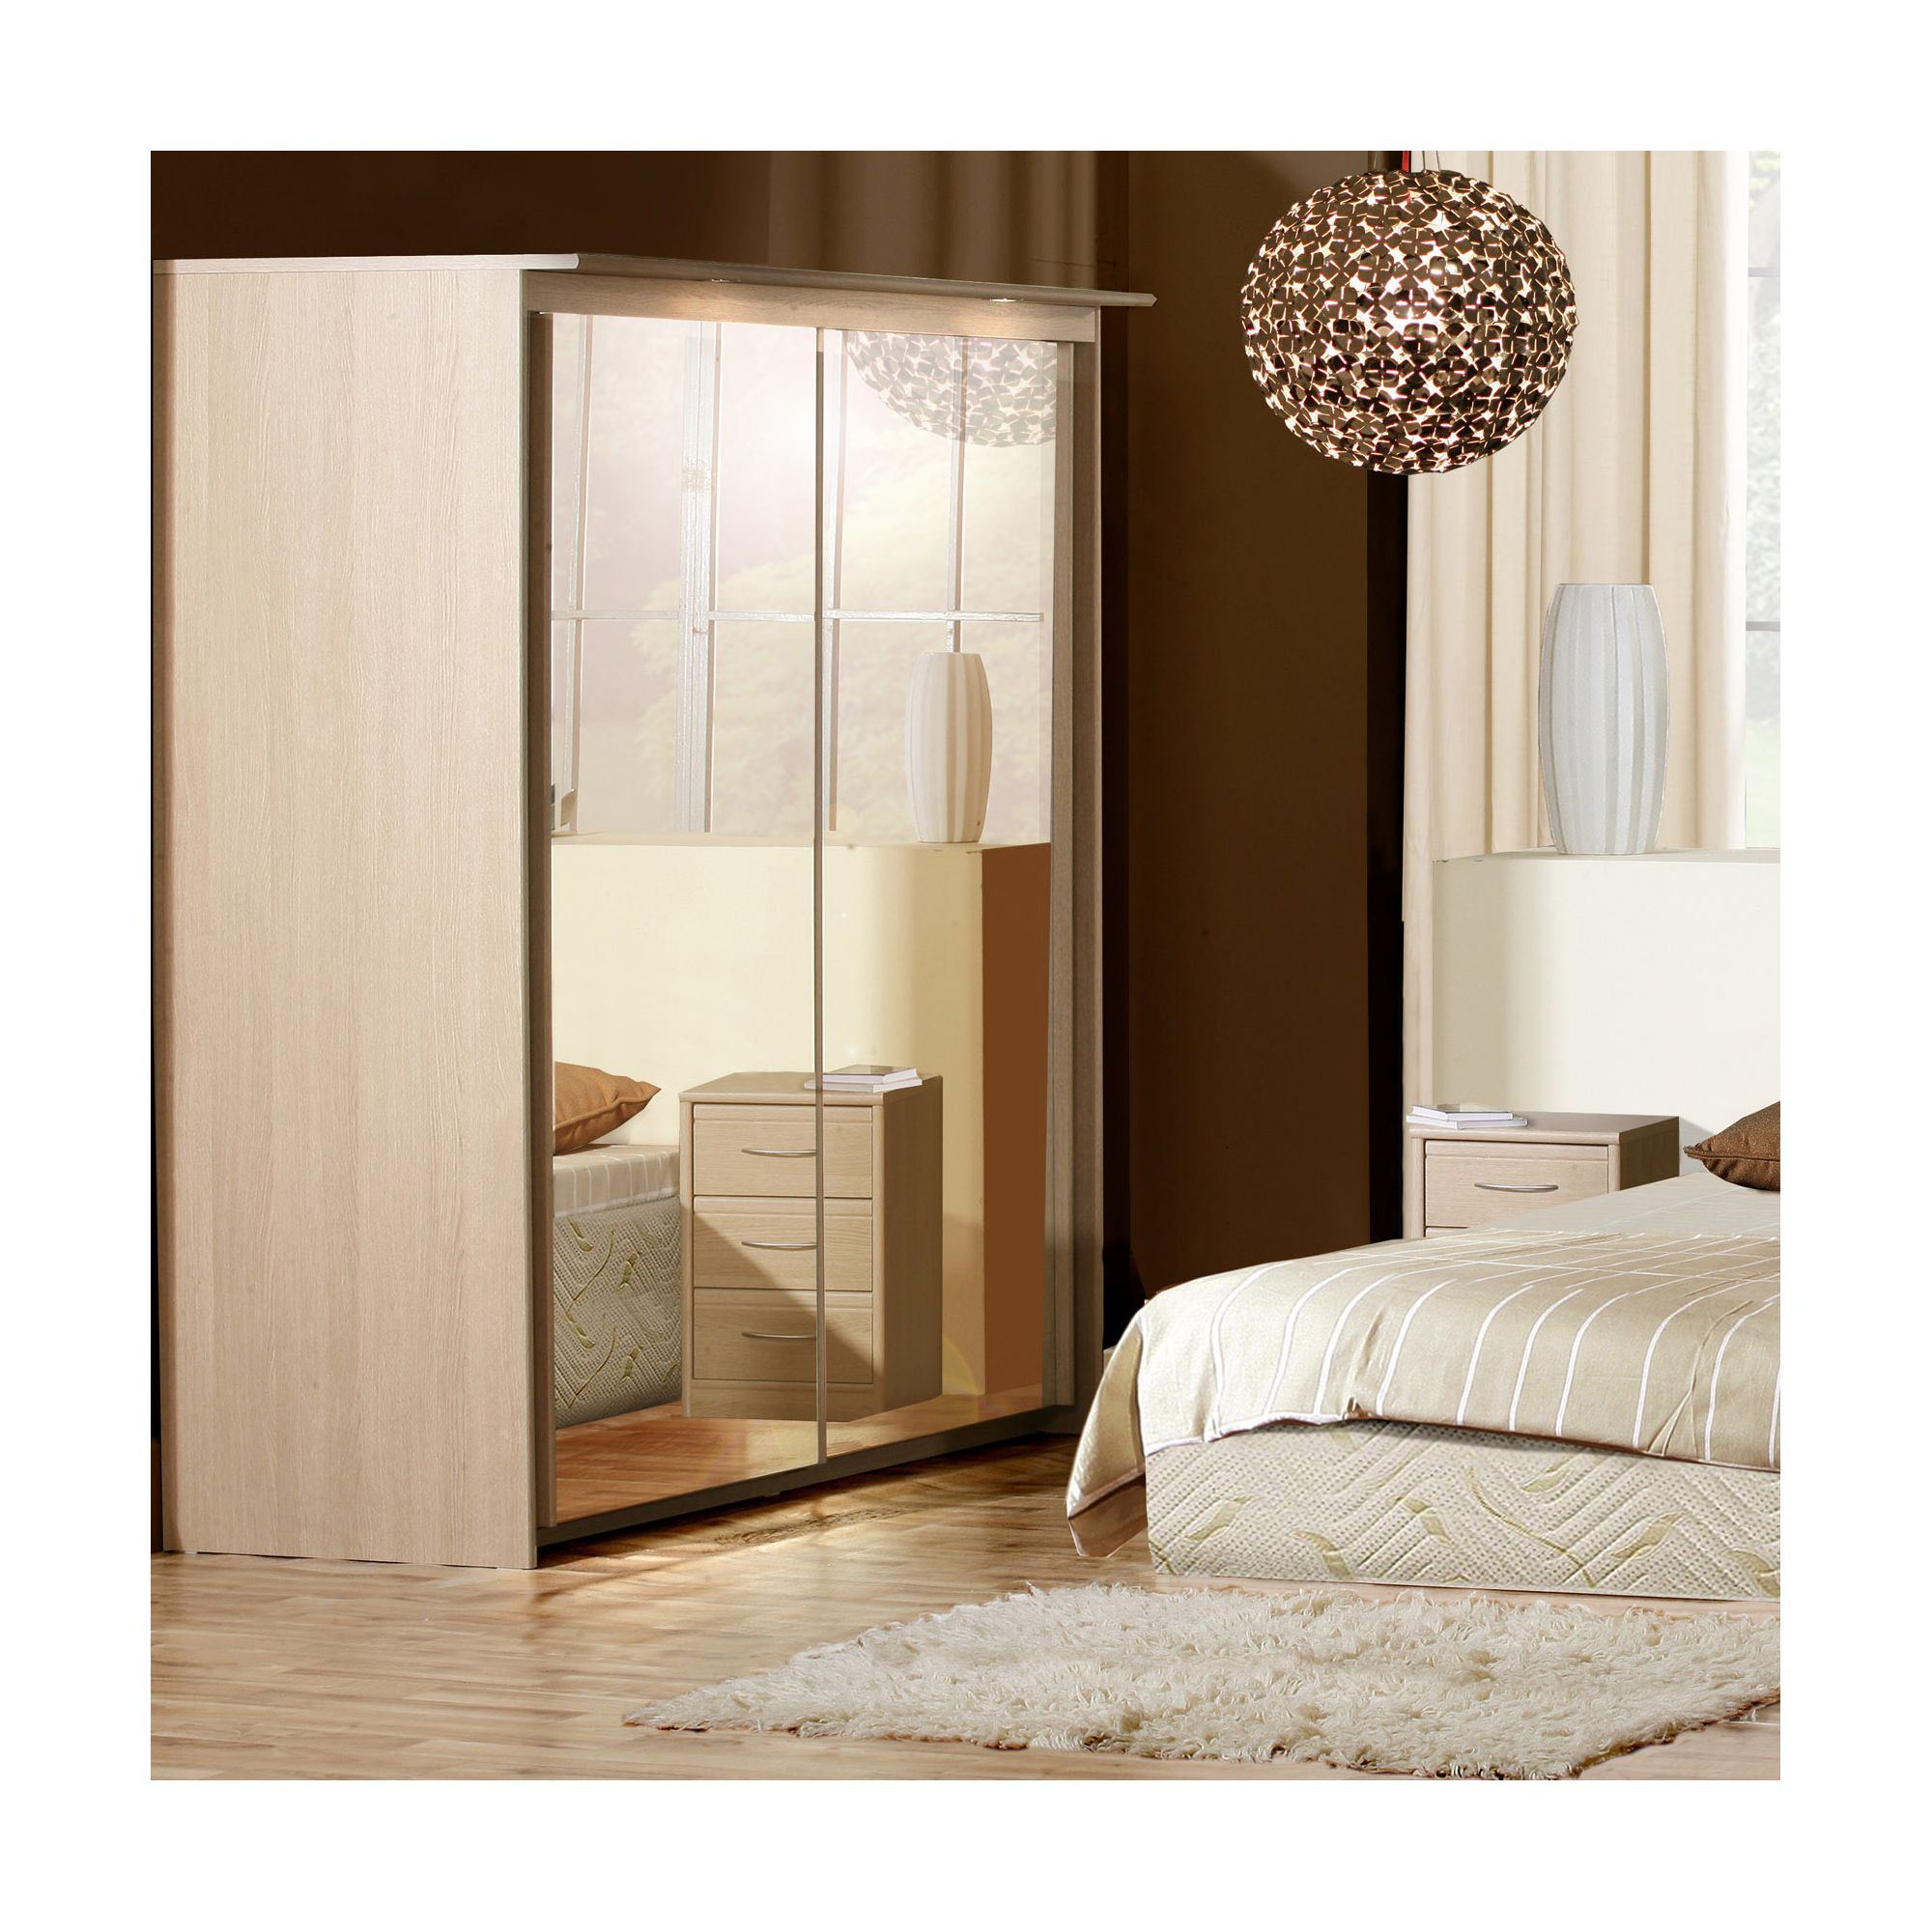 Forte Ruby Mirrored Slider Wardrobe with Lights - Oak at Tesco Direct